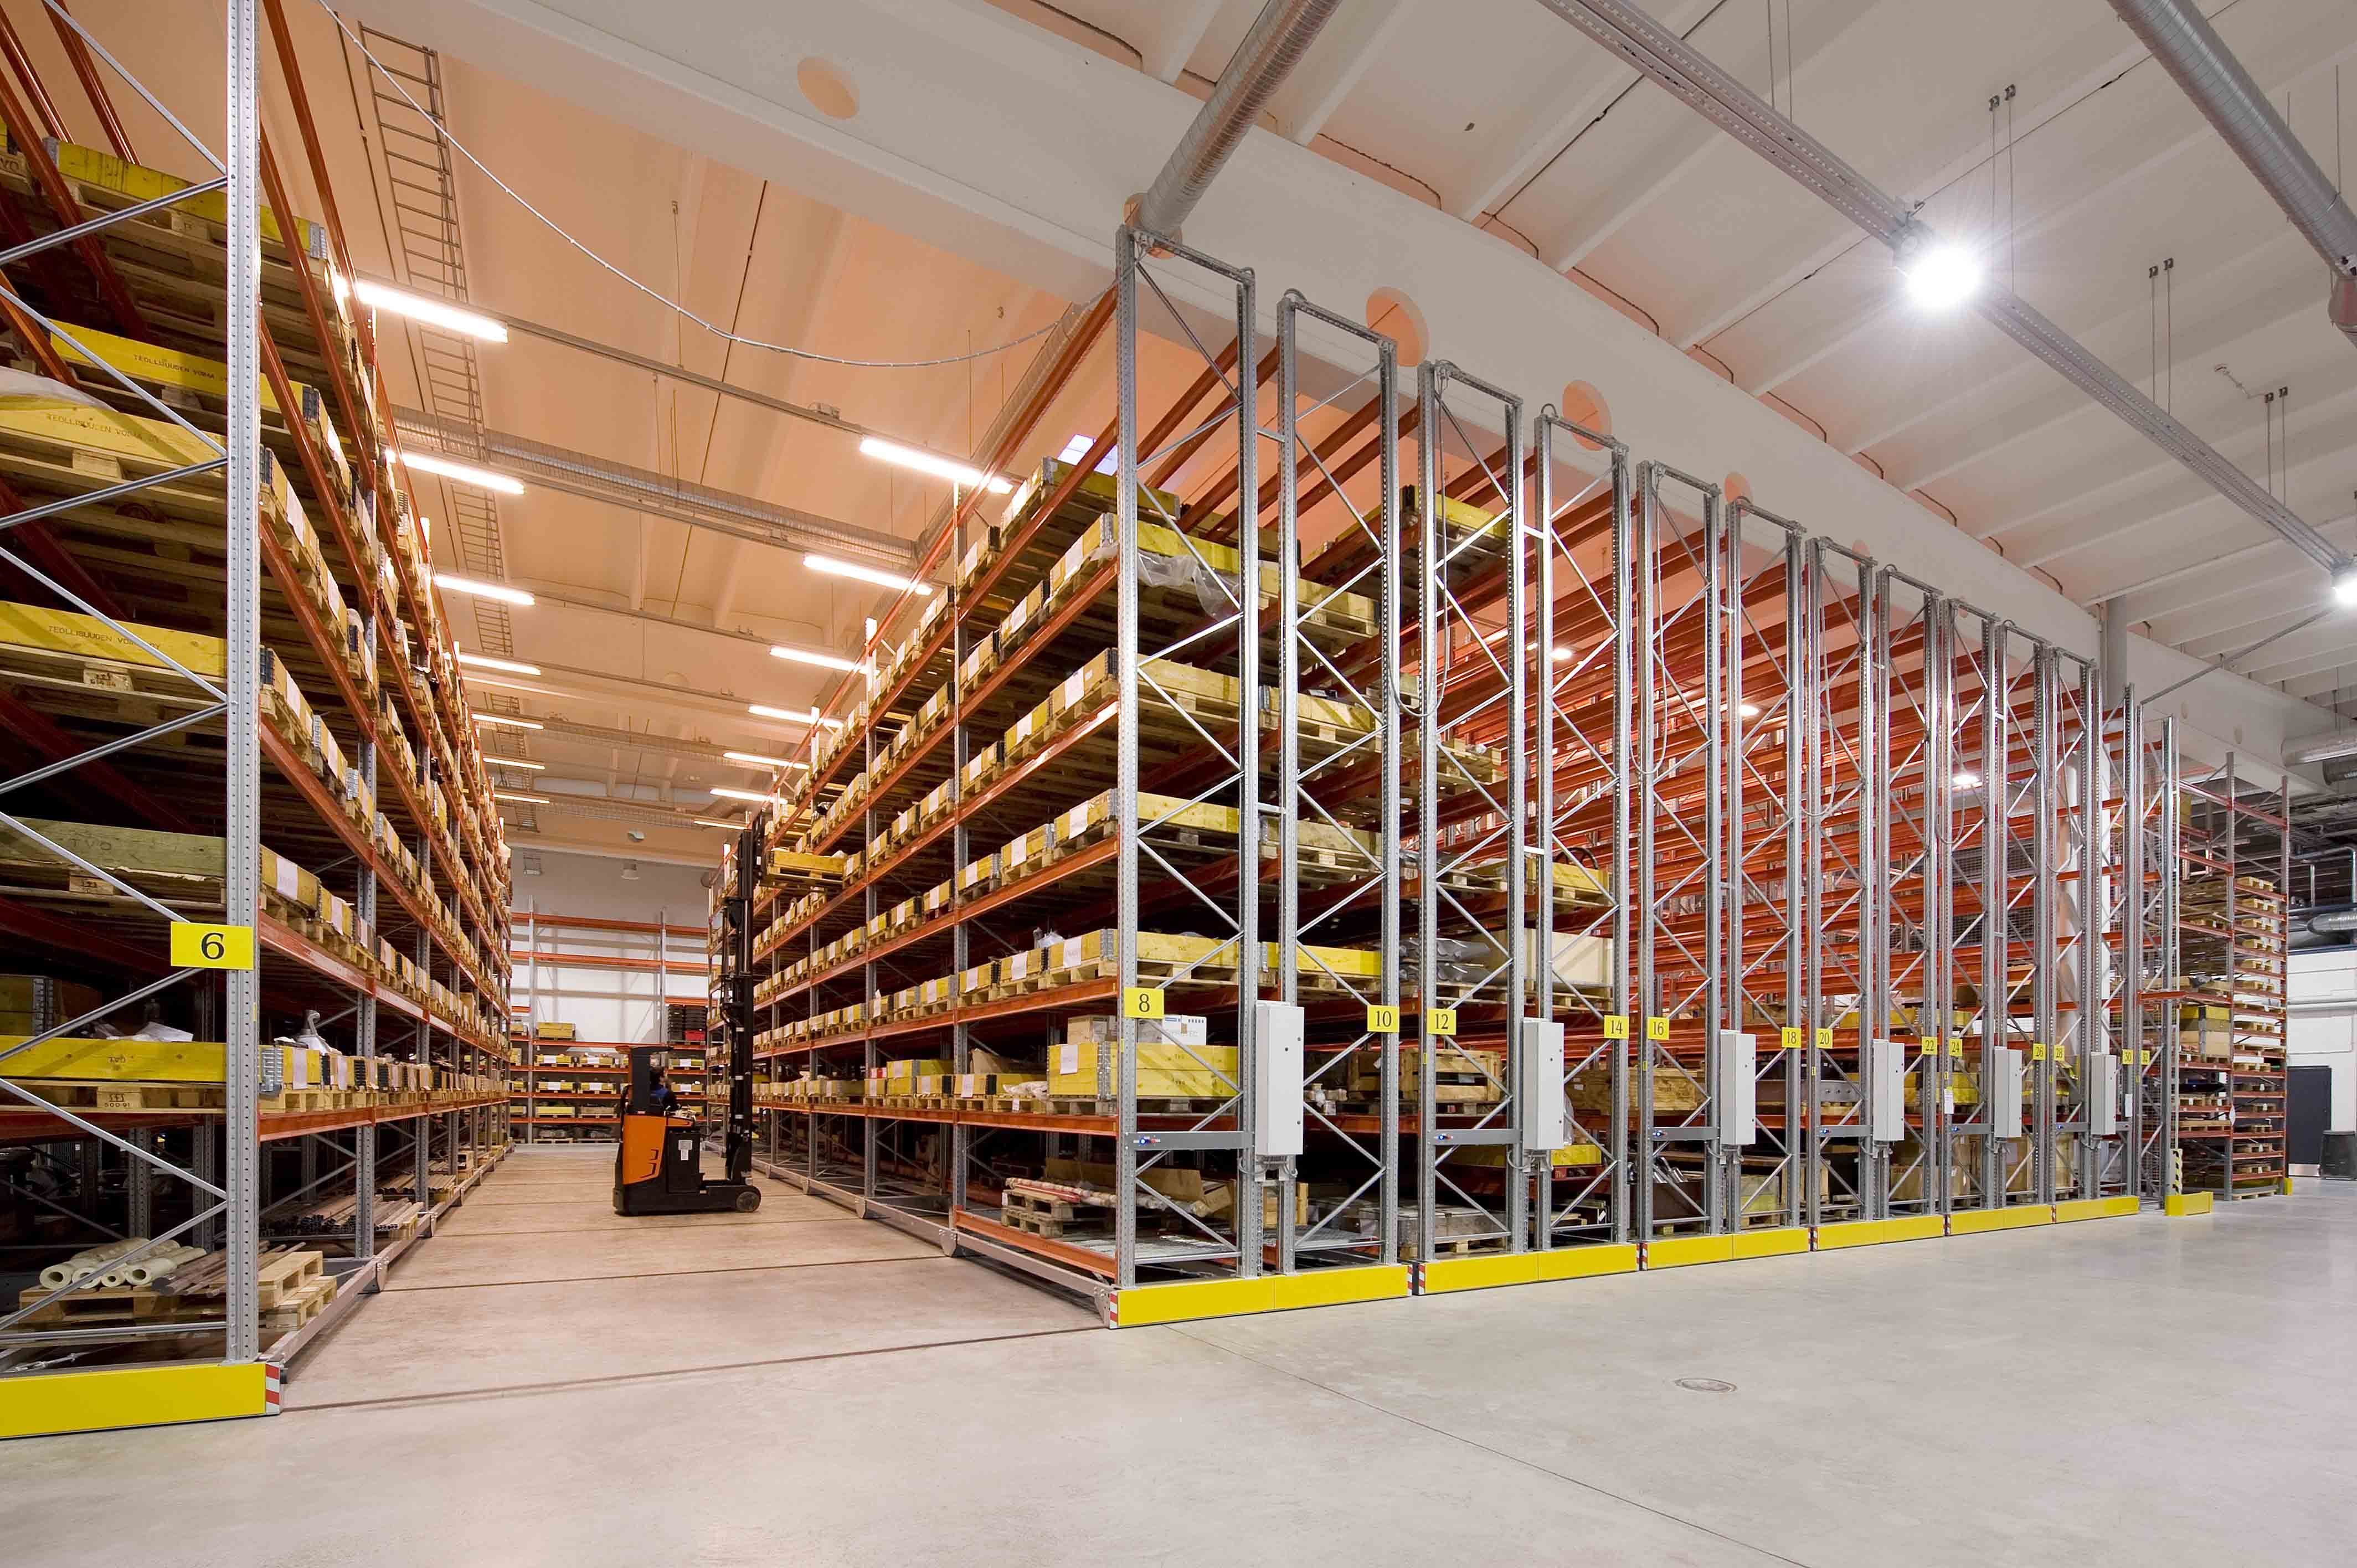 Warehouse Storage Racking And Shelving Warehouse Shelving